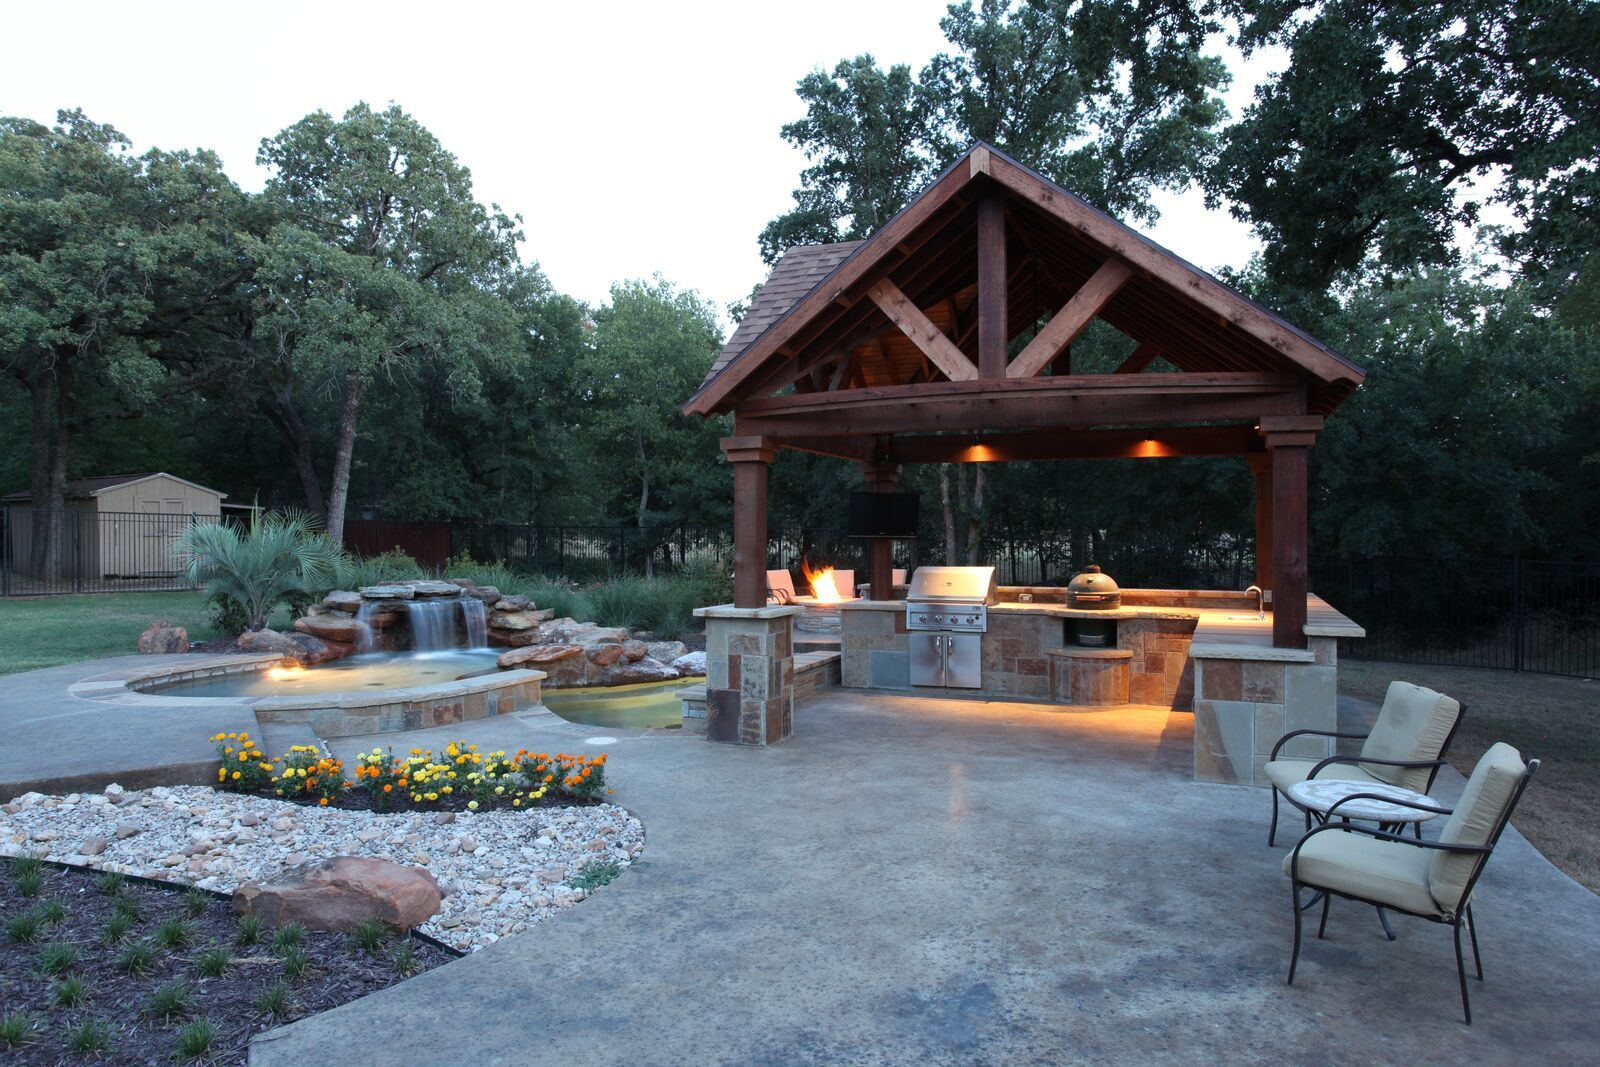 This outdoor kitchen has its own space! Built in a beautiful pavilion, it has all the comforts of an indoor kitchen- BBQ, green egg, and sink with running water. By Outdoor Signature in Argyle, TX